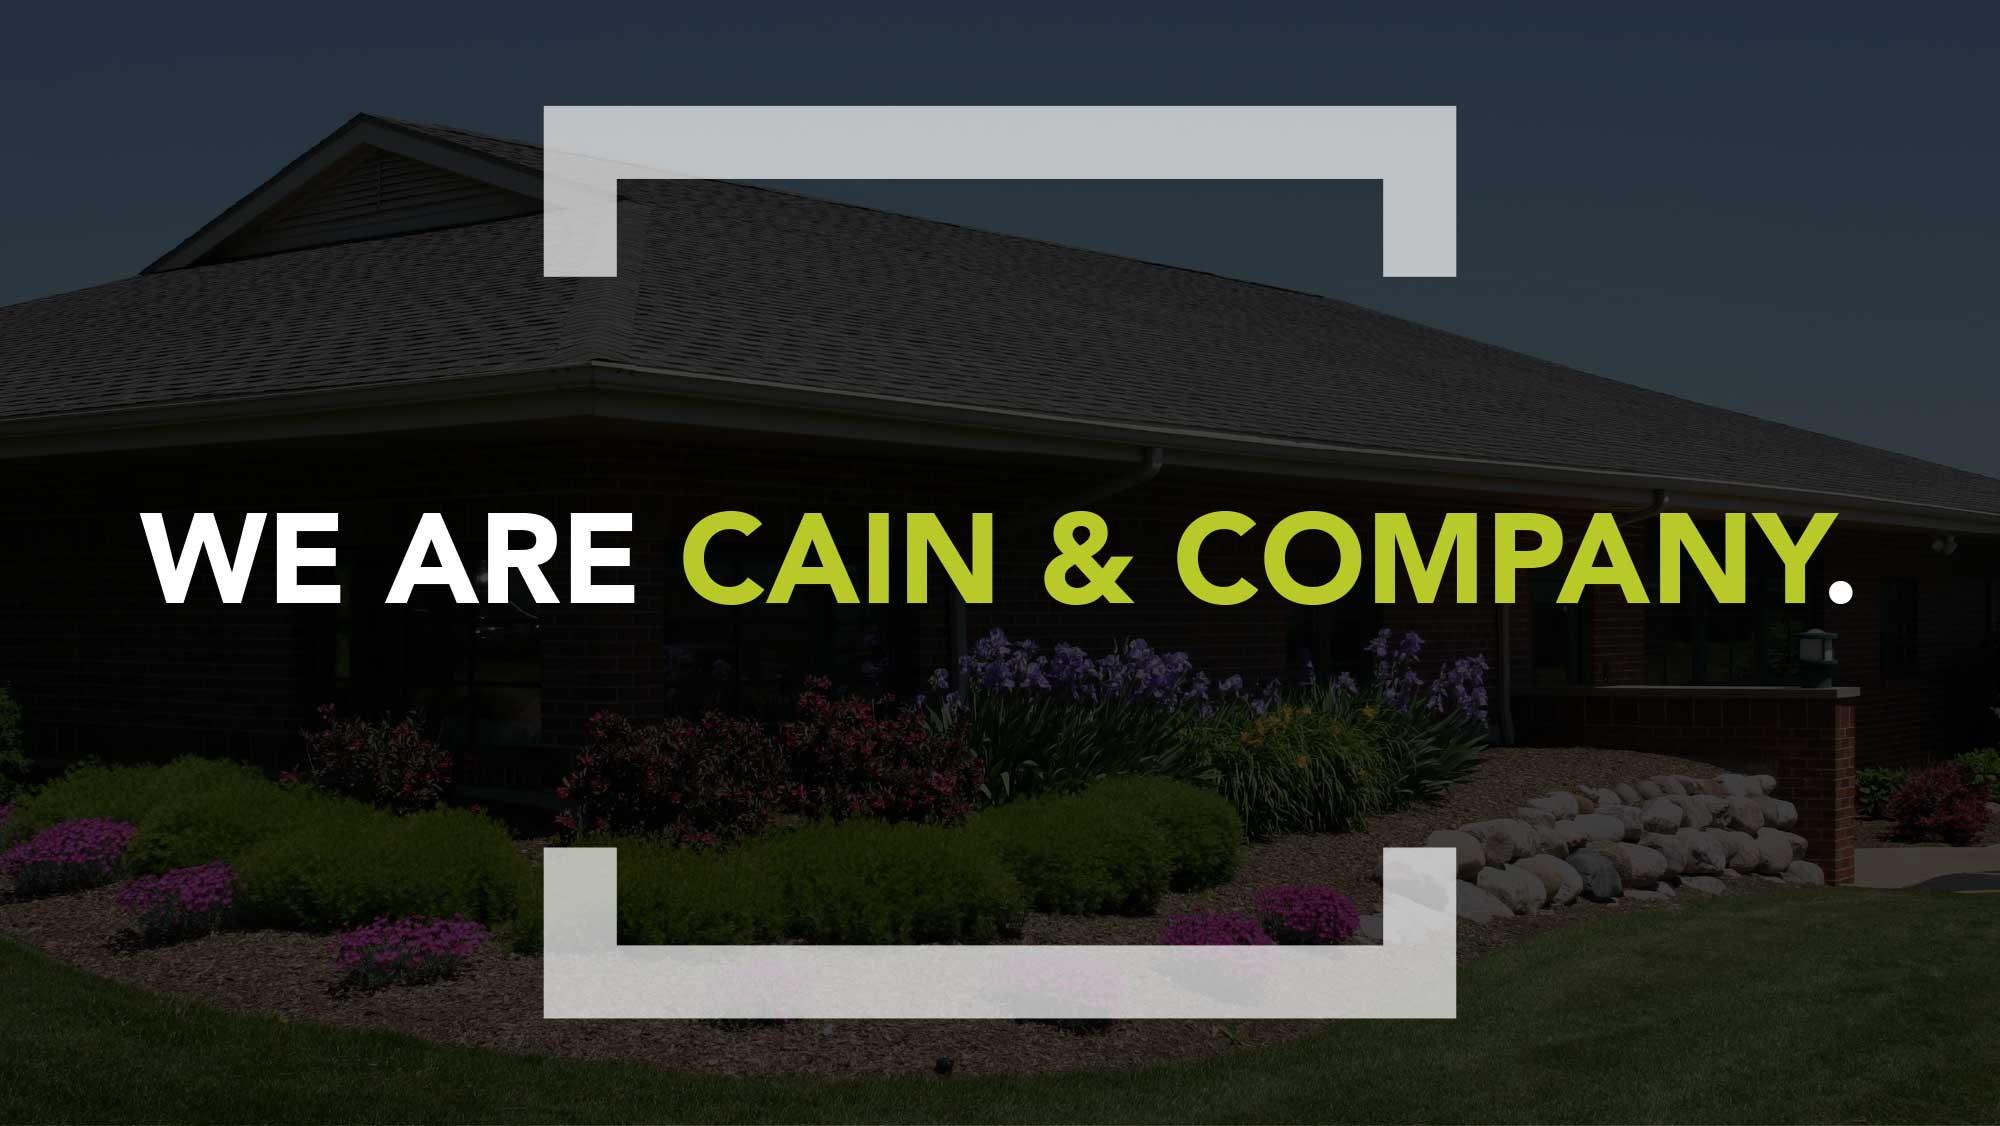 Cain & Company About Us